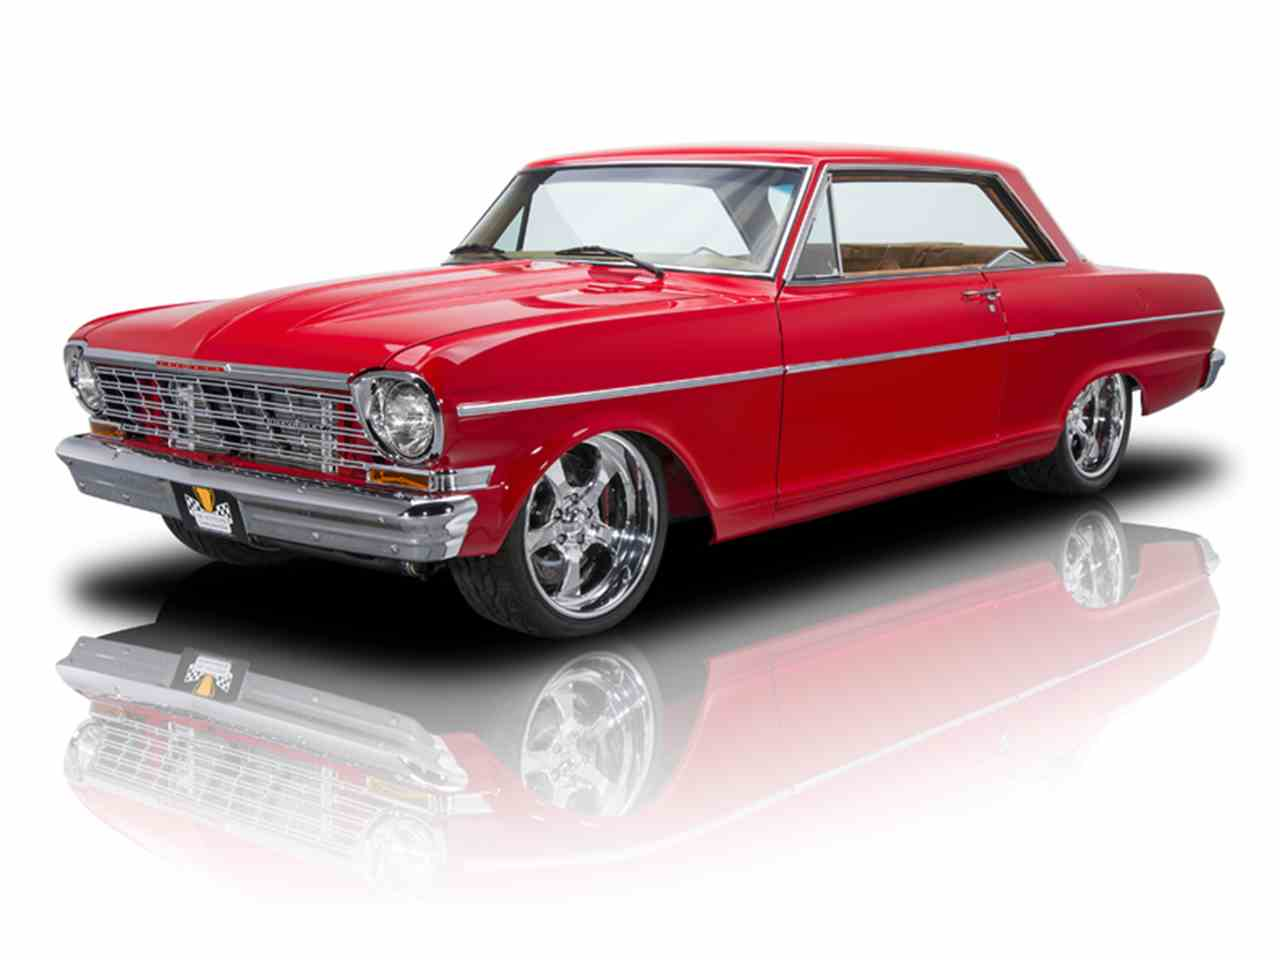 All Chevy 1964 chevy ii : 1964 Chevrolet Nova for Sale on ClassicCars.com